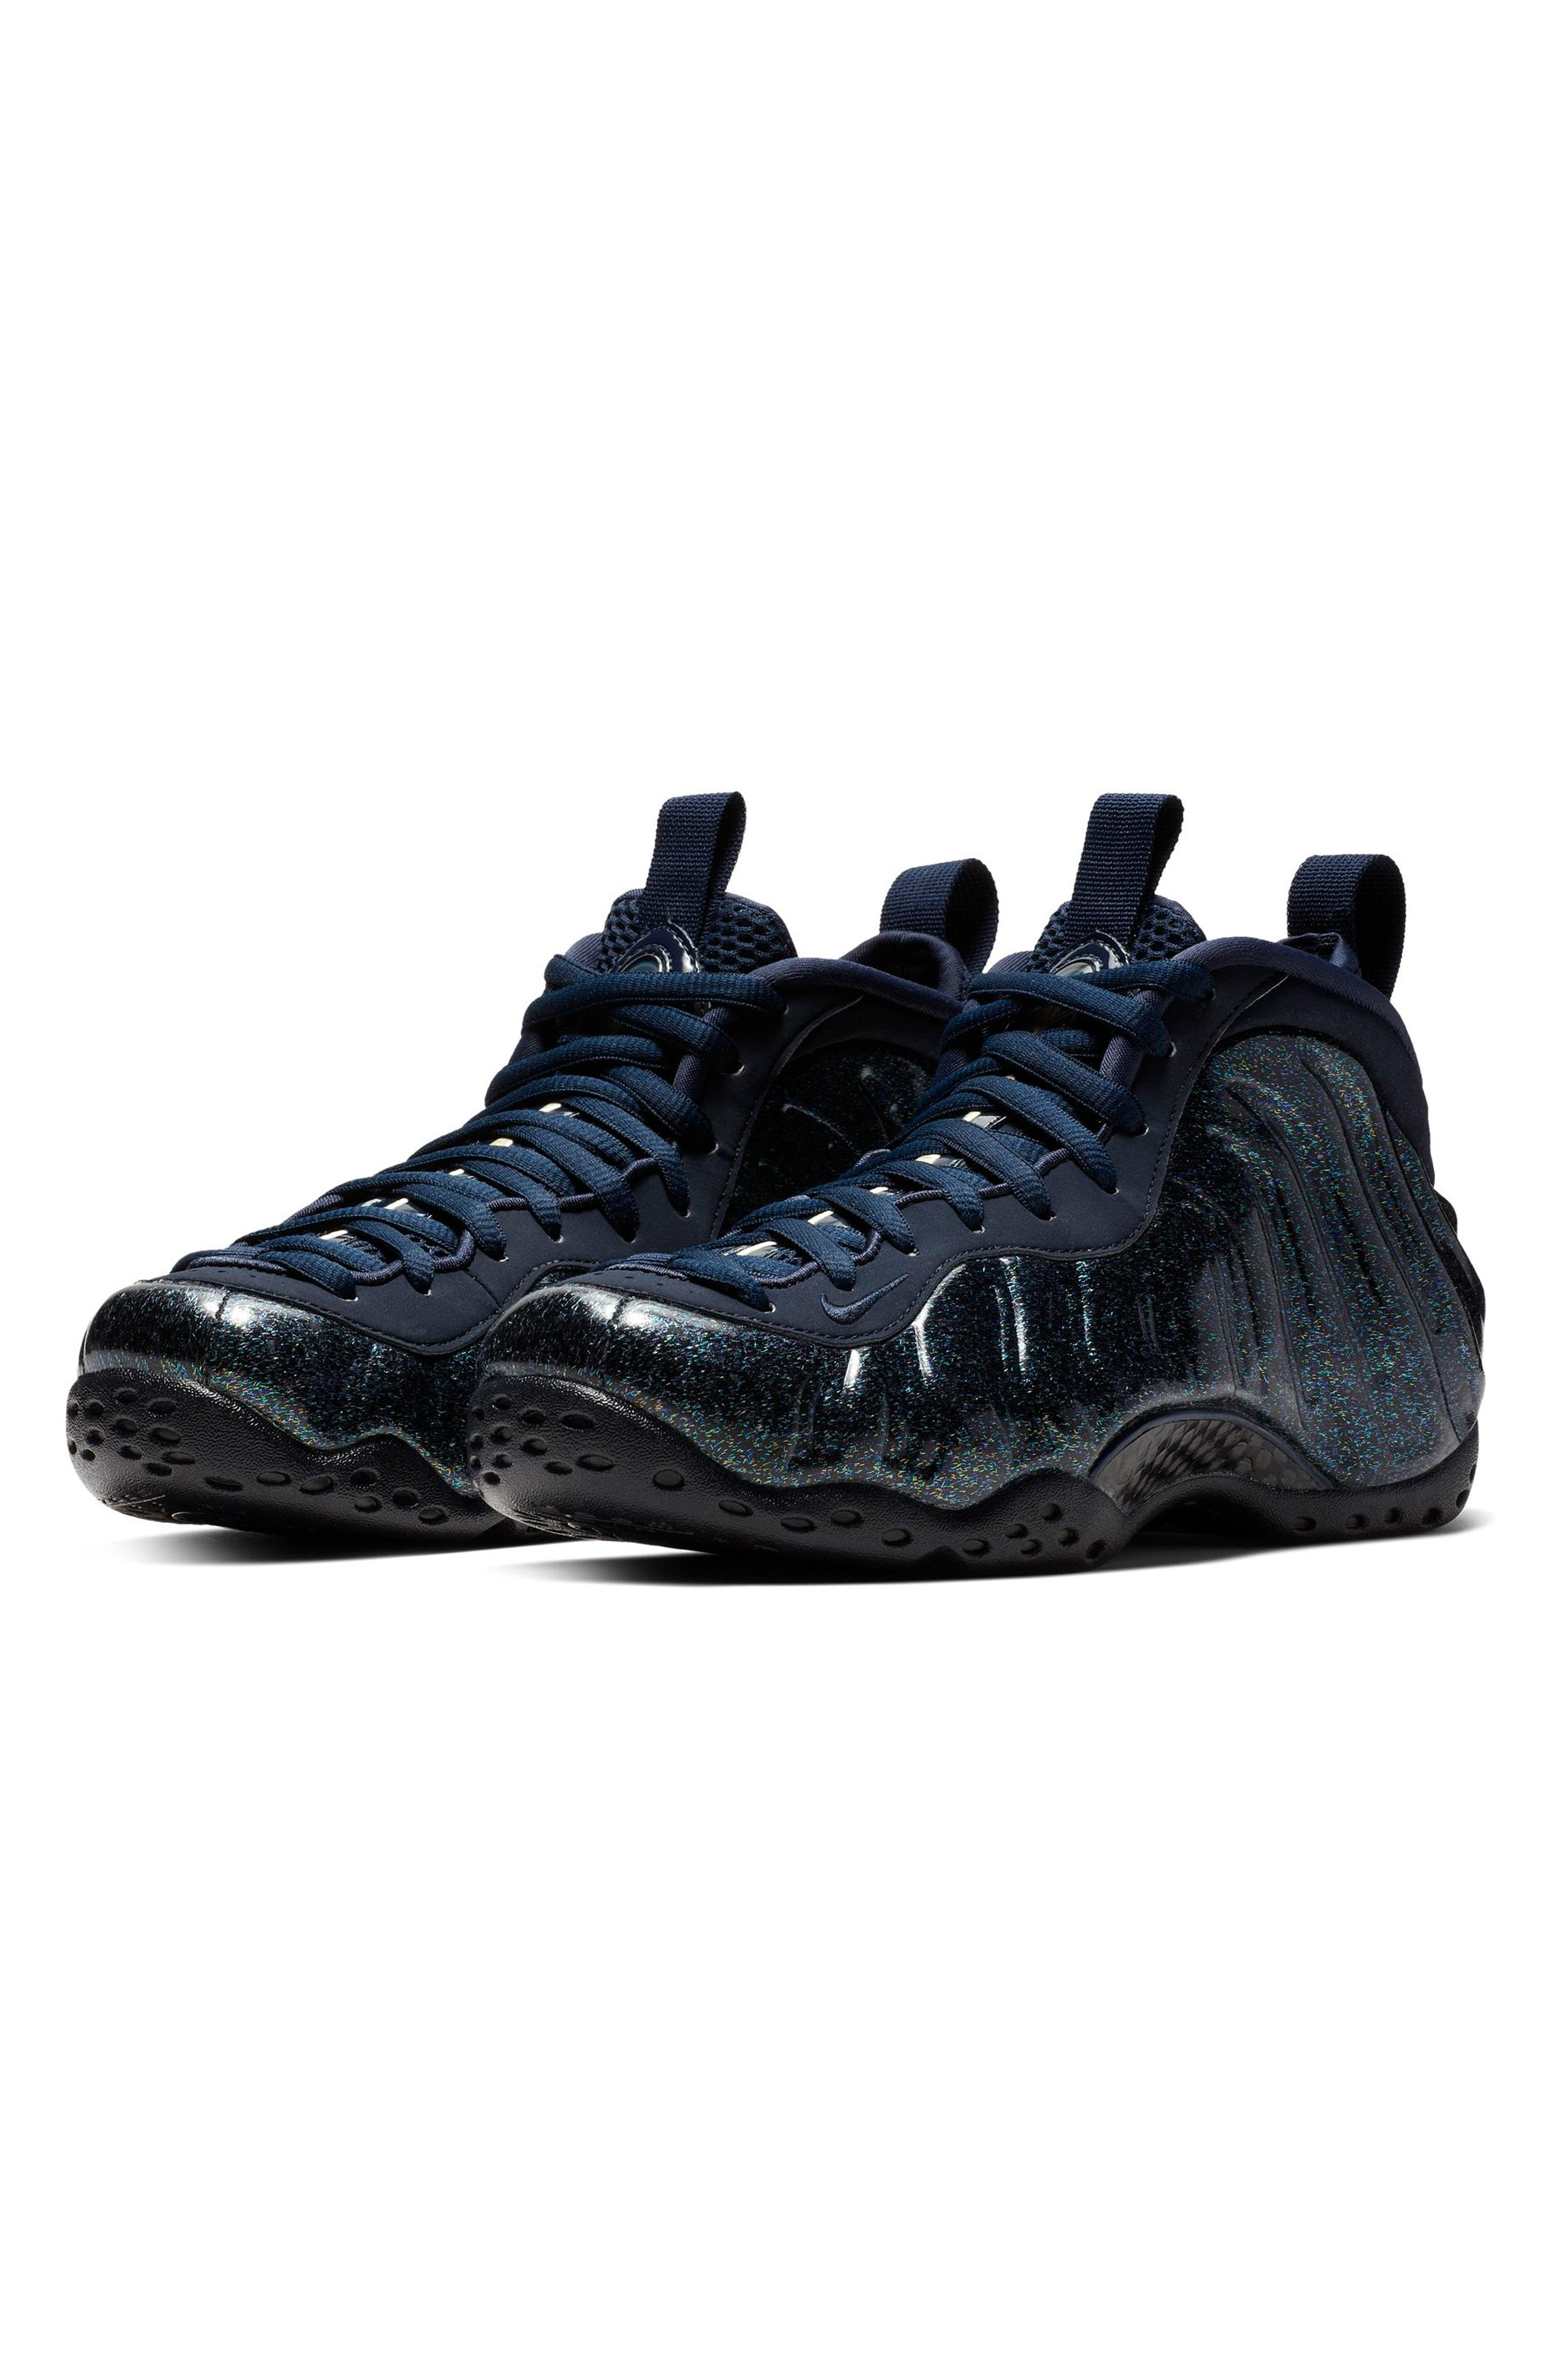 4bc6aa26206c2 Lyst - Nike Air Foamposite One Sneaker in Blue - Save 2%